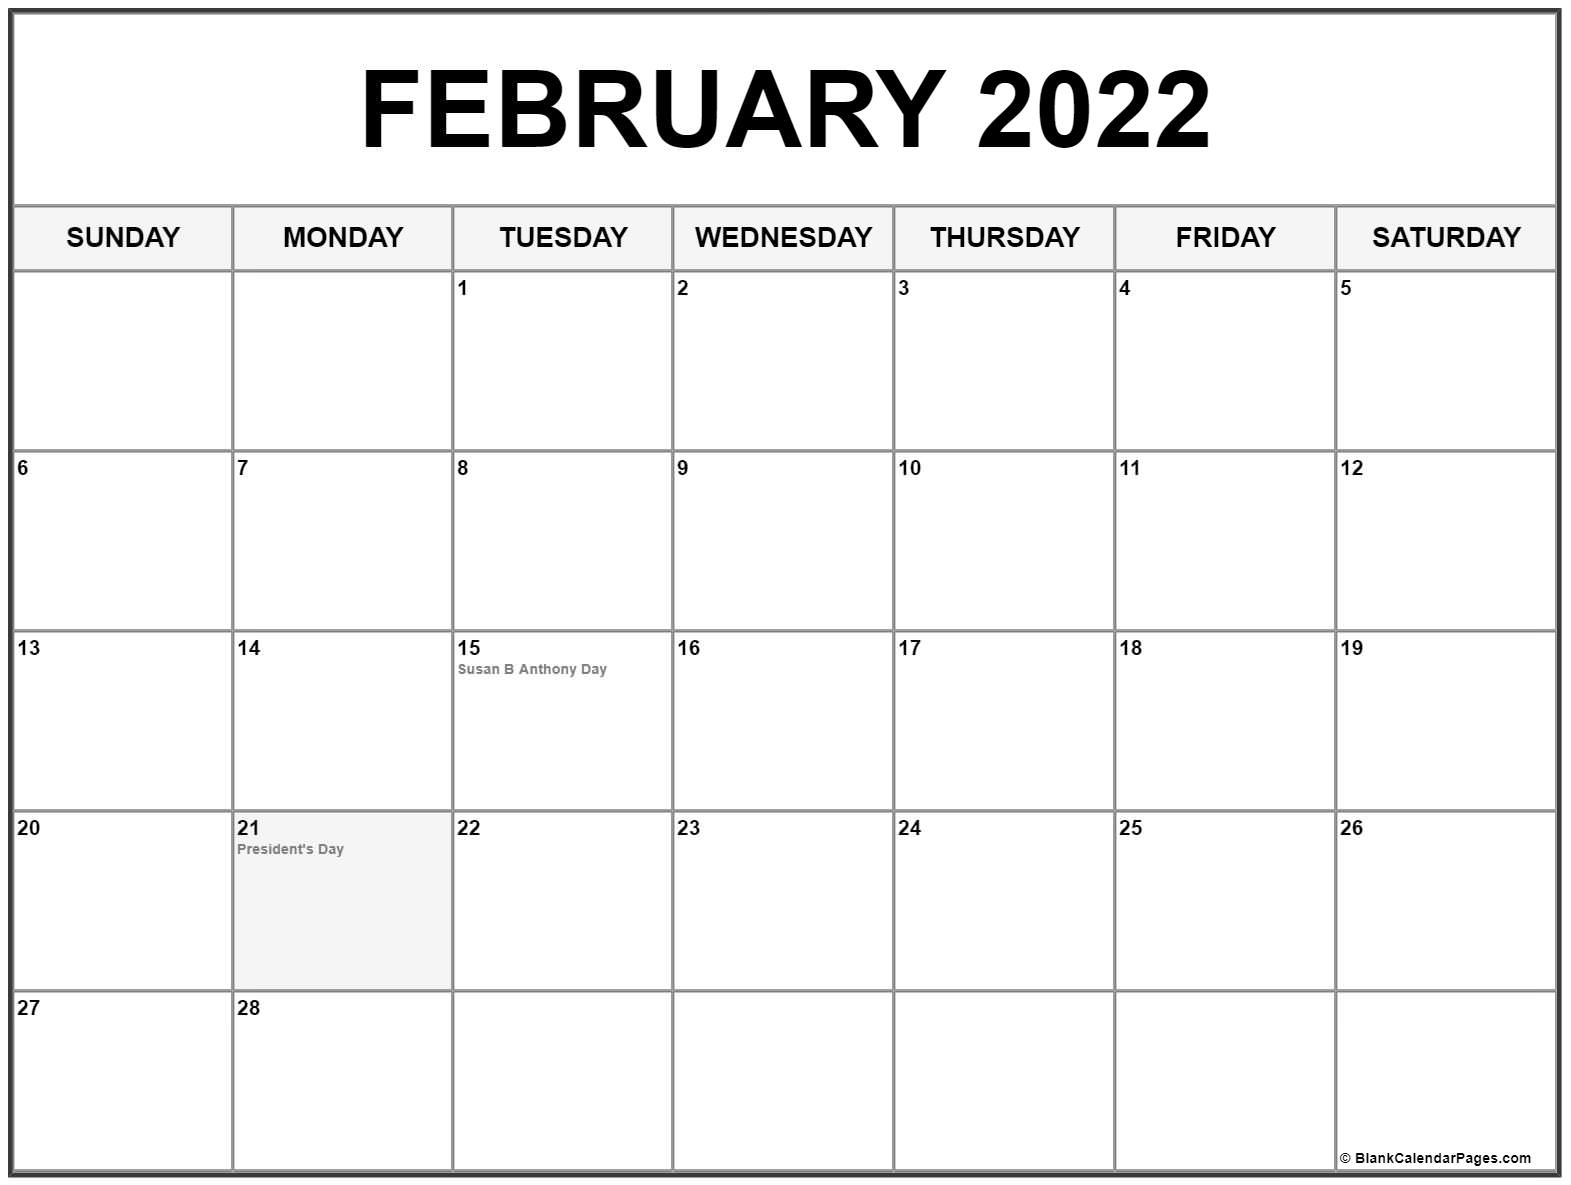 February 2022 calendar with holidays